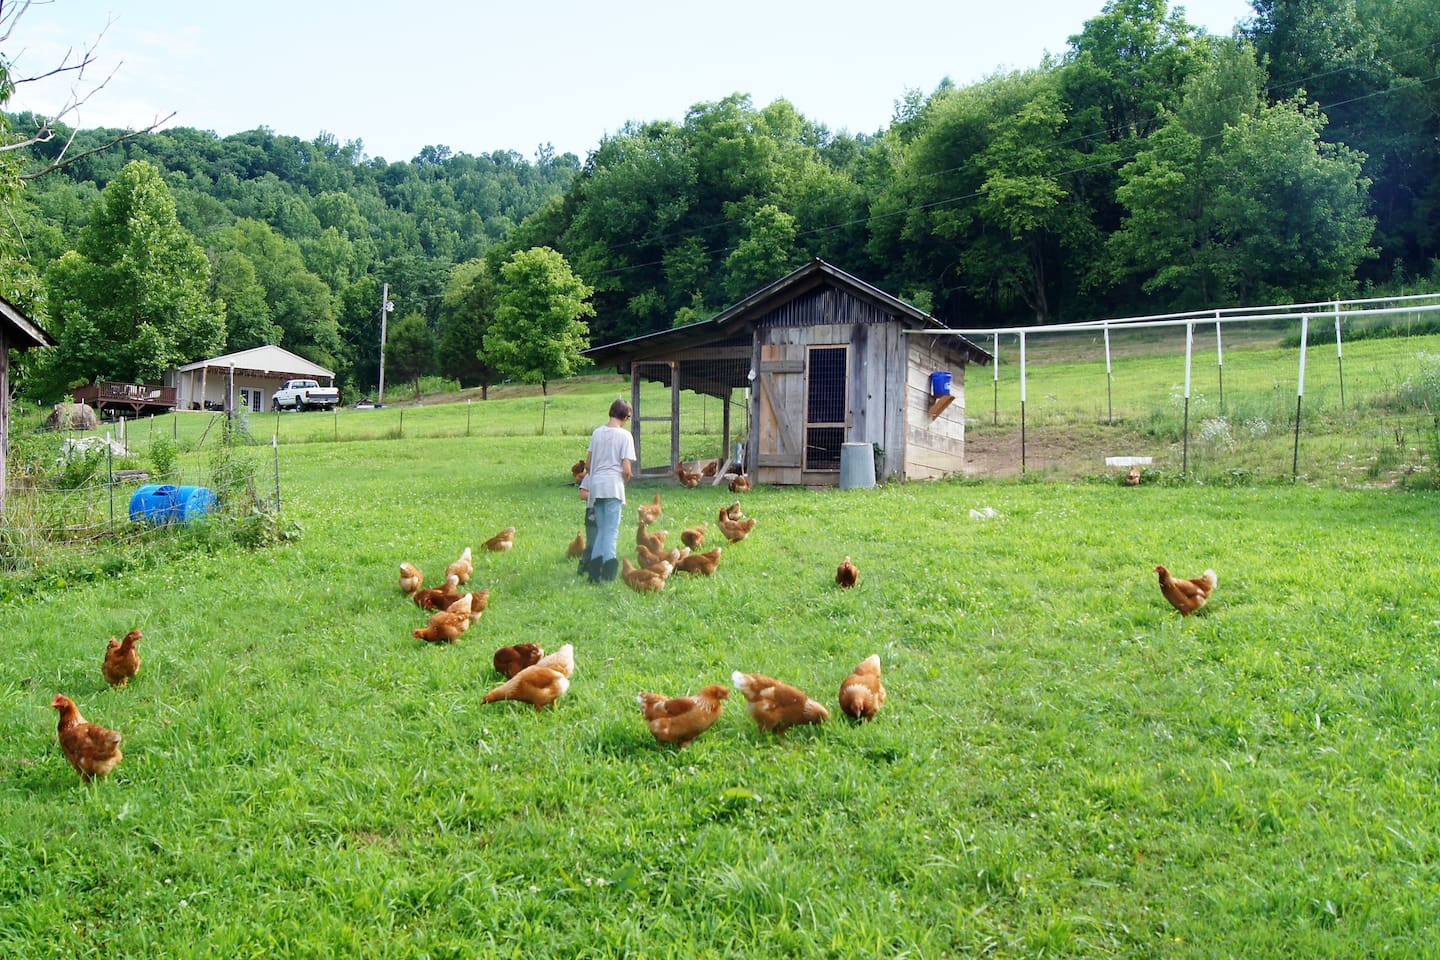 Building nestled in the background is the building. Picture taken from our home. Chickens provide fresh eggs if wanted.